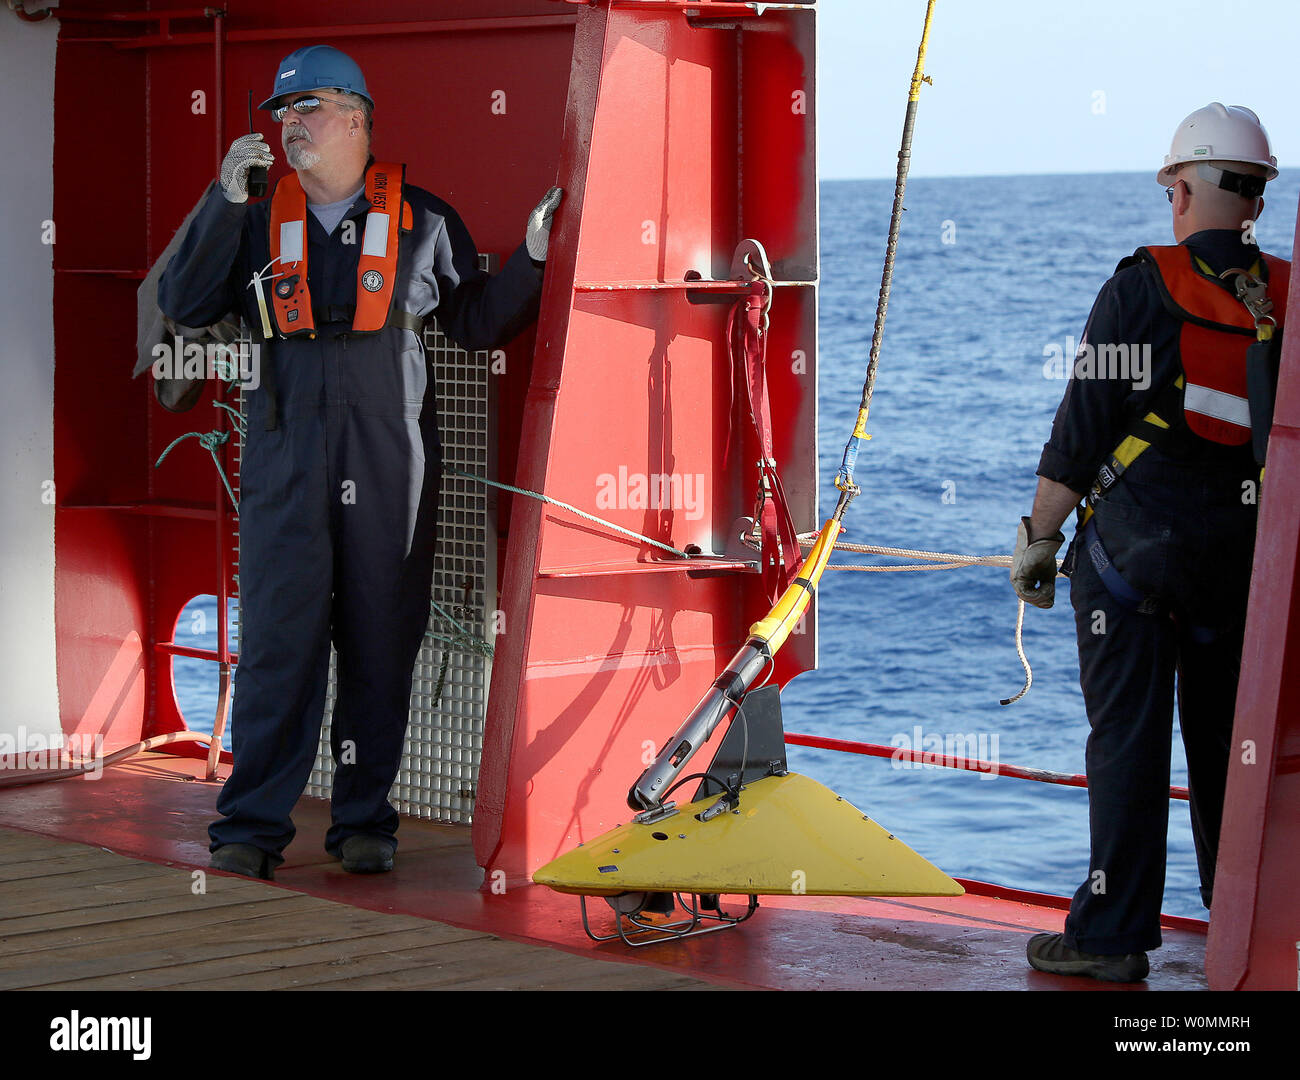 Phoenix International personnel prepare to deploy a 'towed pinger locator' off the deck of Australian Defense Vessel Ocean Shield in the search for the flight data recorder and cockpit voice recorder of a Malaysia Airlines jetliner missing in the Indian Ocean, about 1,000 miles off the coast of Perth, Australia.  The U.S. Navy 'towed pinger locator' connected to the Ocean Shield picked up signals consistent with that of the missing jetliner it was announced today April 7, 2014.   UPI/Kelly Hunt/Australian Defense Force - Stock Image